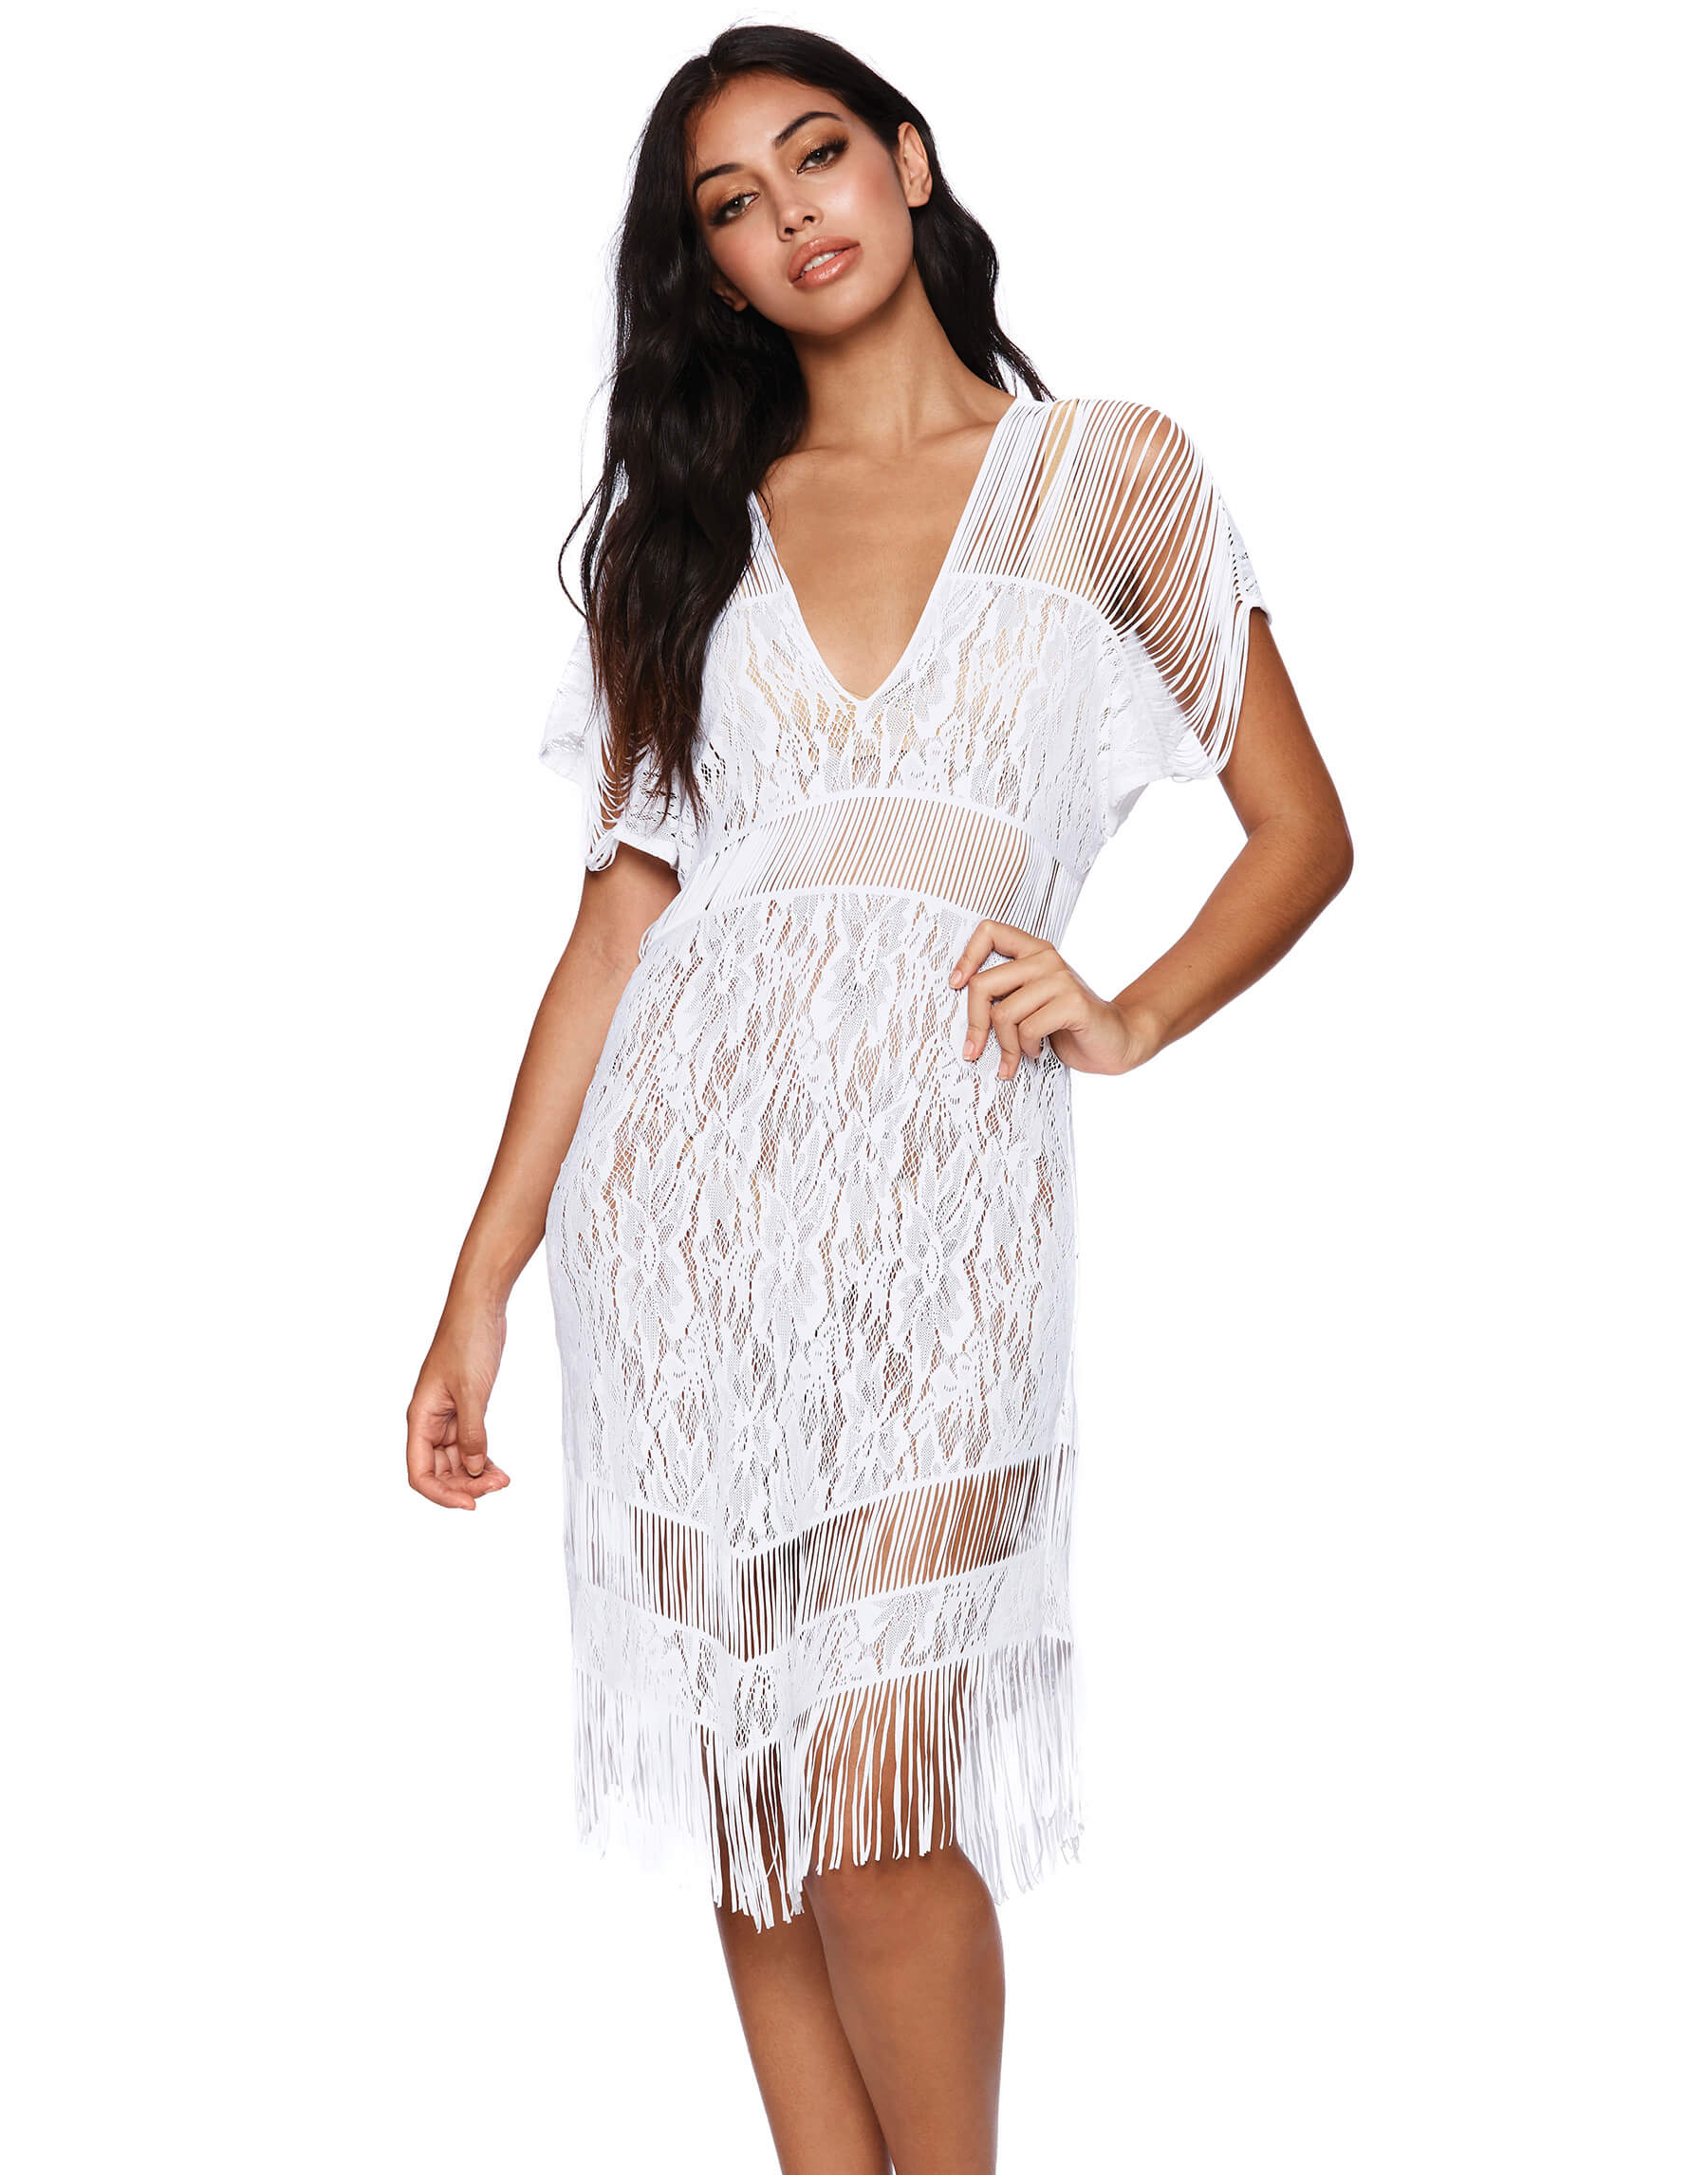 Indian Summer Lace Dress - White image